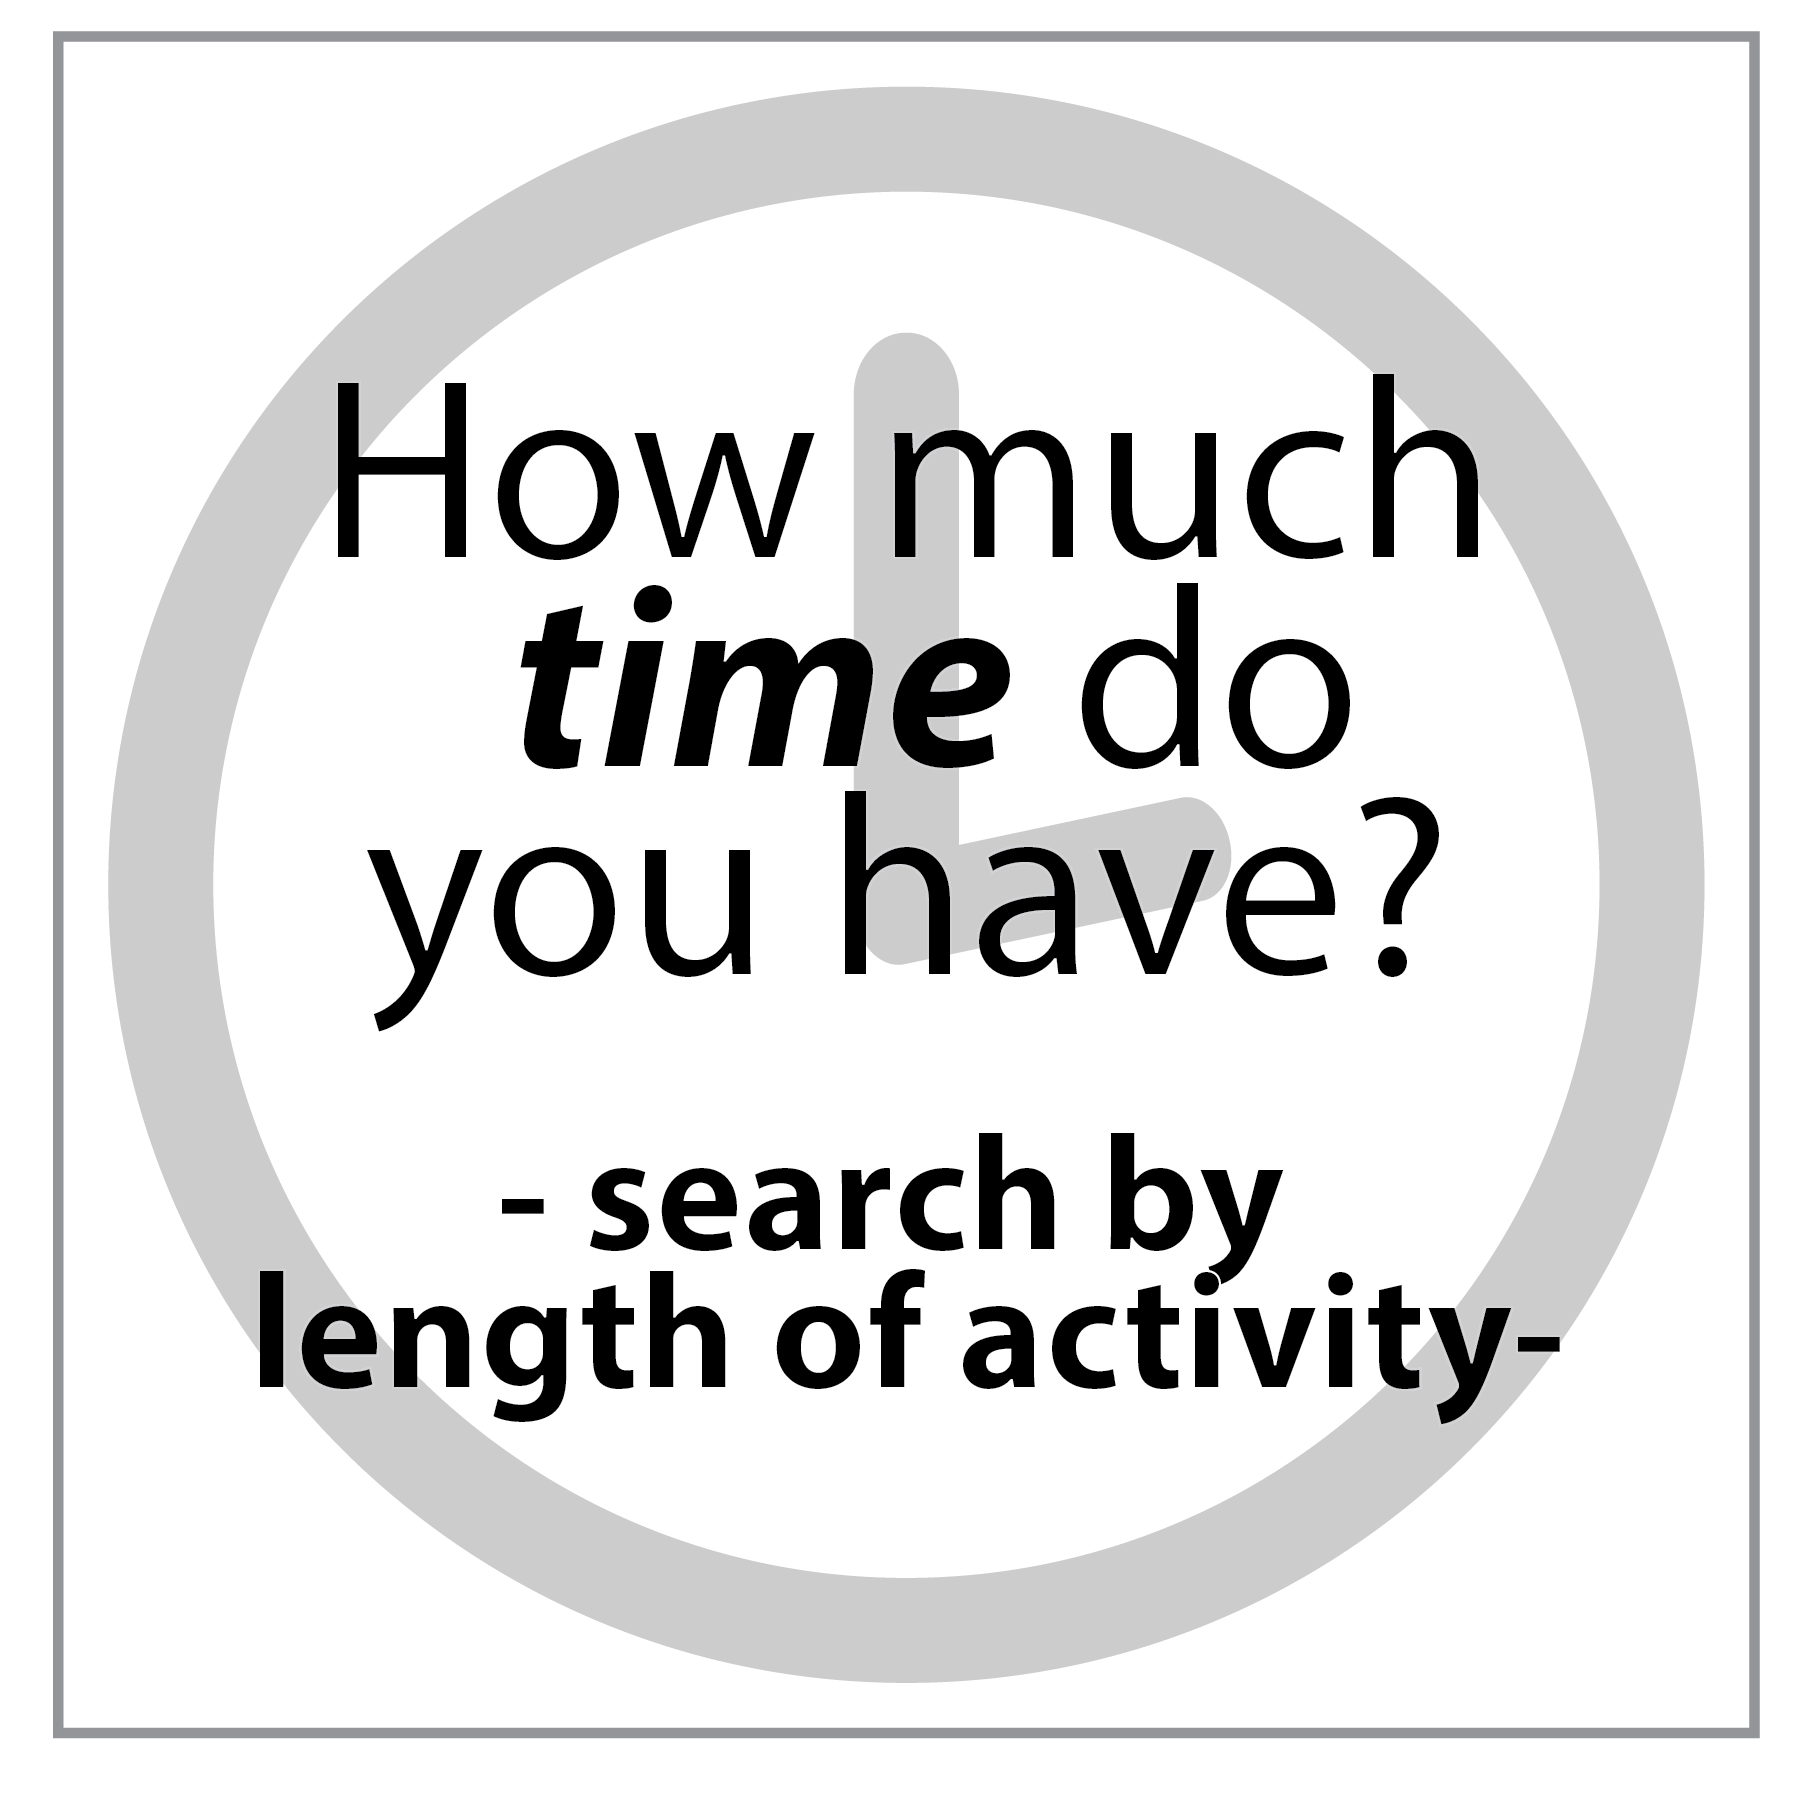 Search by activity length